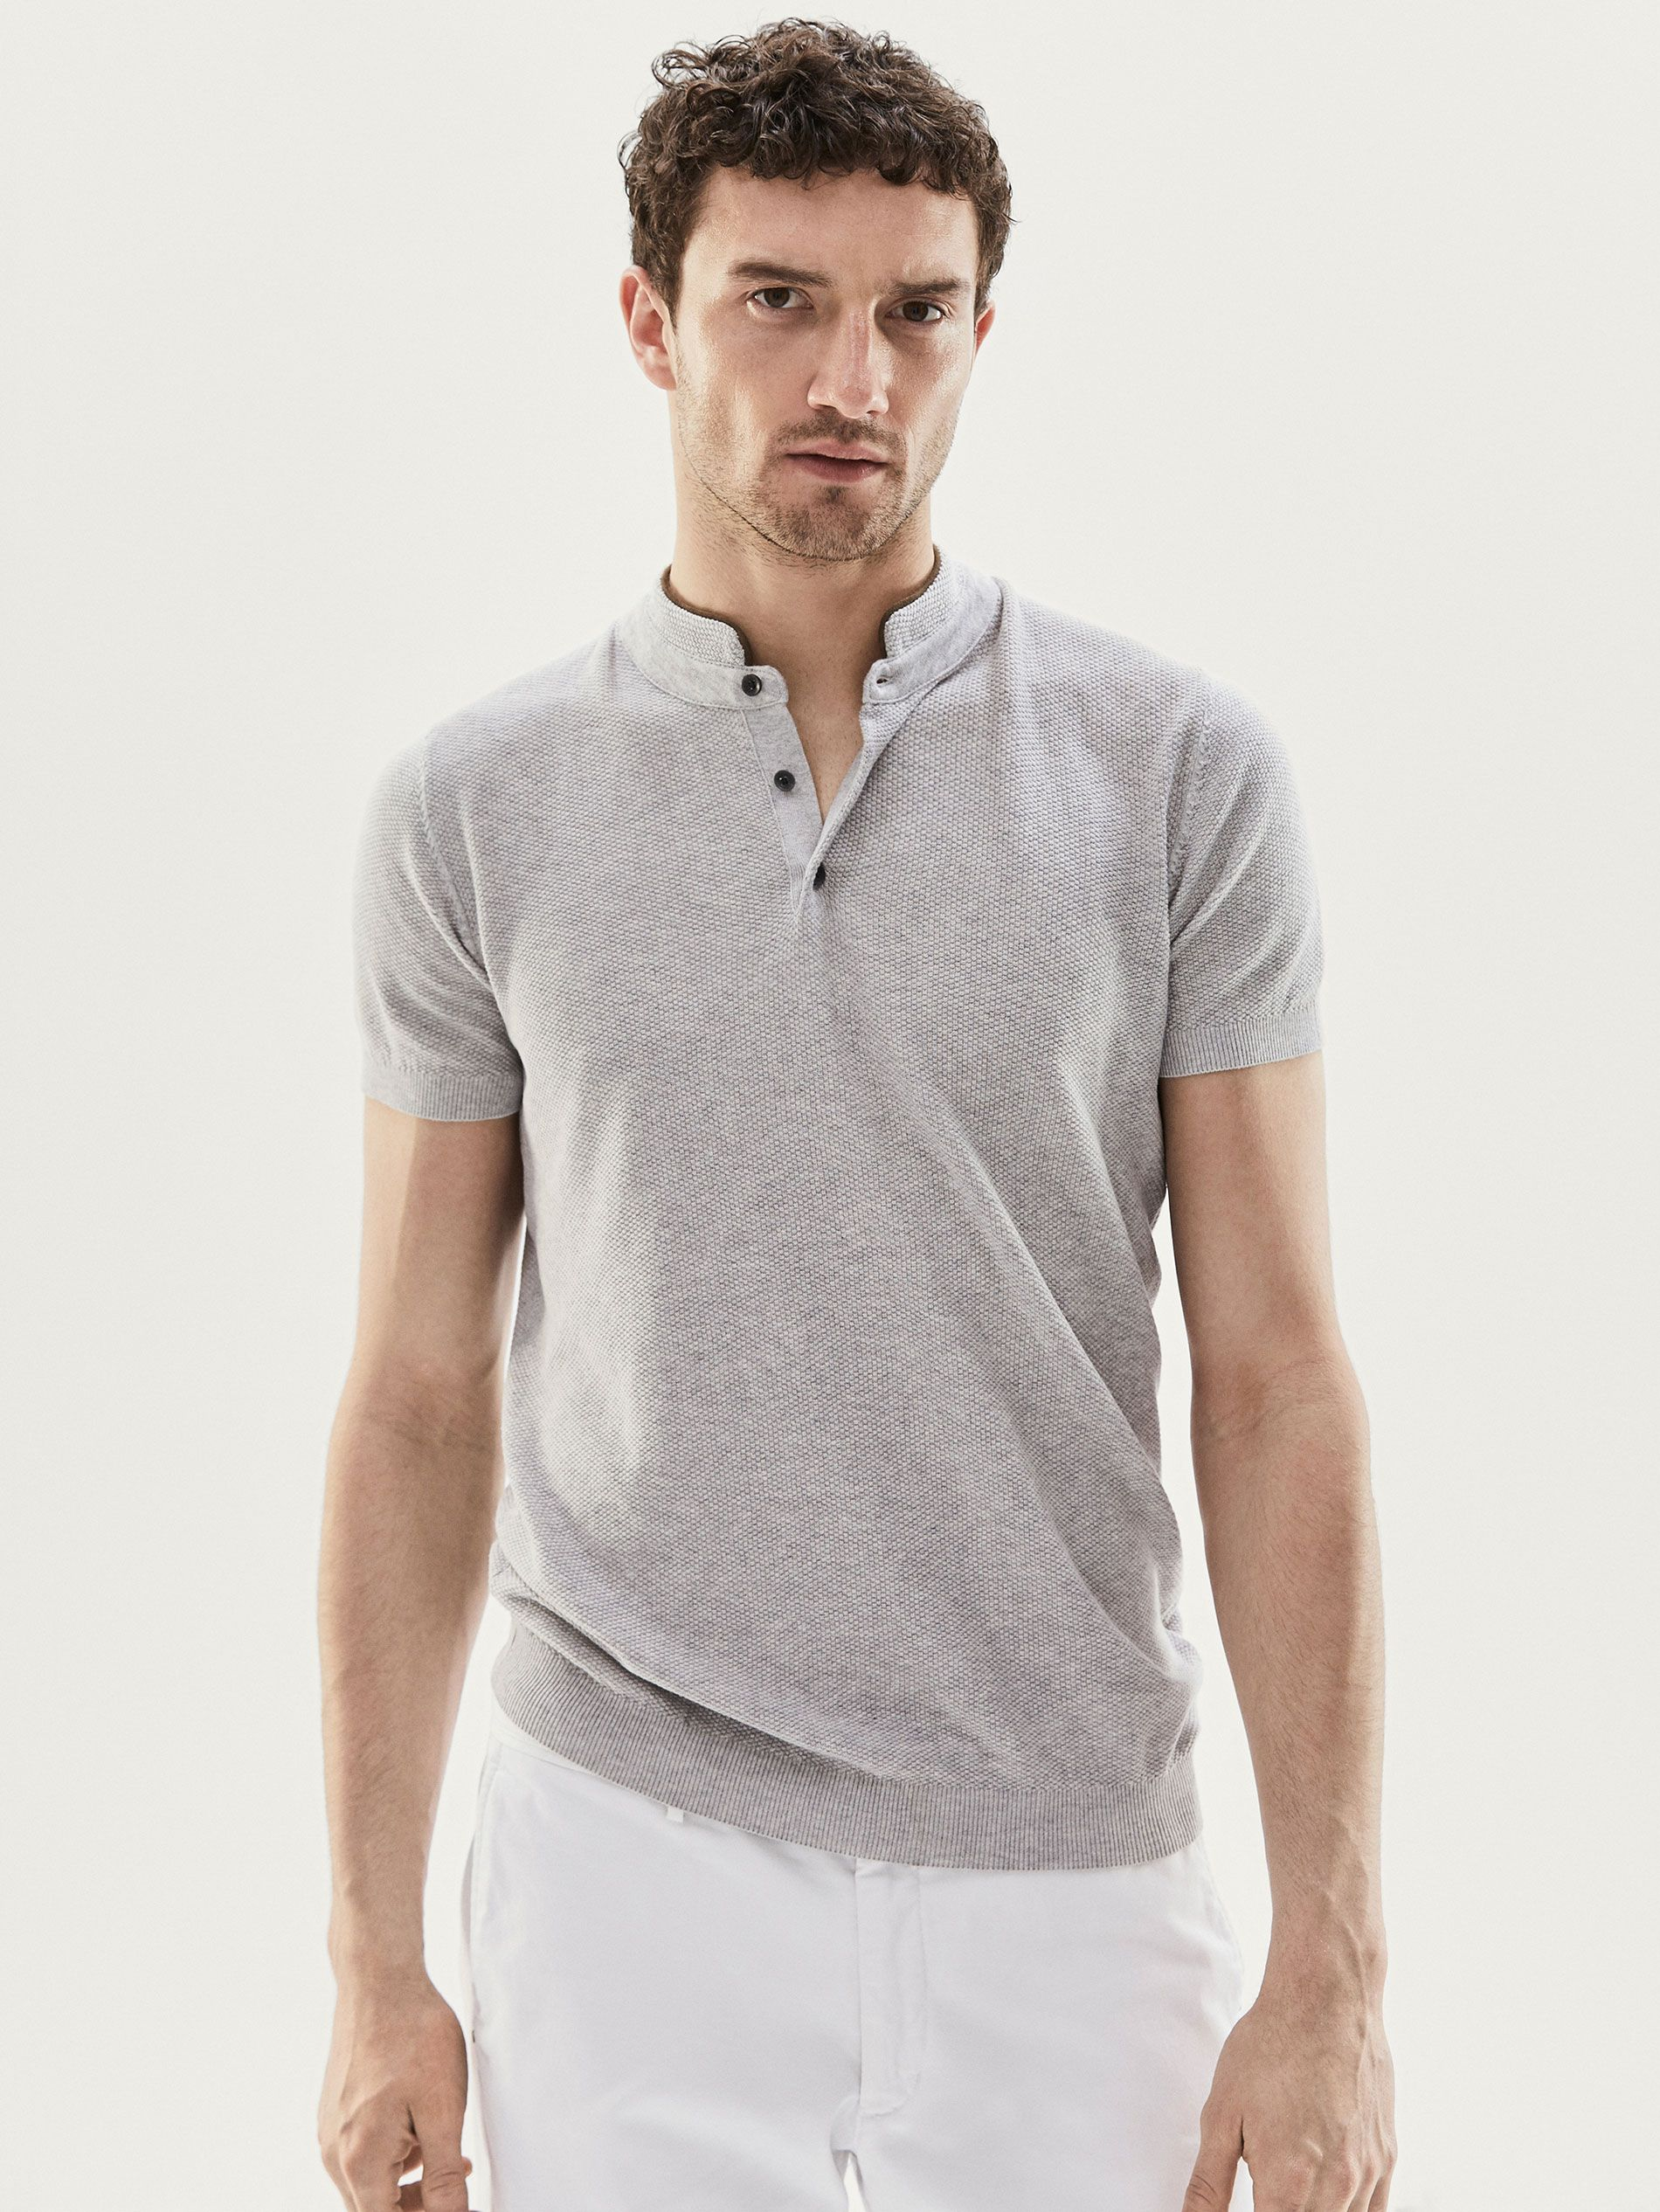 2cdb7c3fd2f Spring Summer 2017 Men´s PULL STYLE POLO MOTIF CONTRASTANT at Massimo Dutti  for 39.95. Effortless elegance!